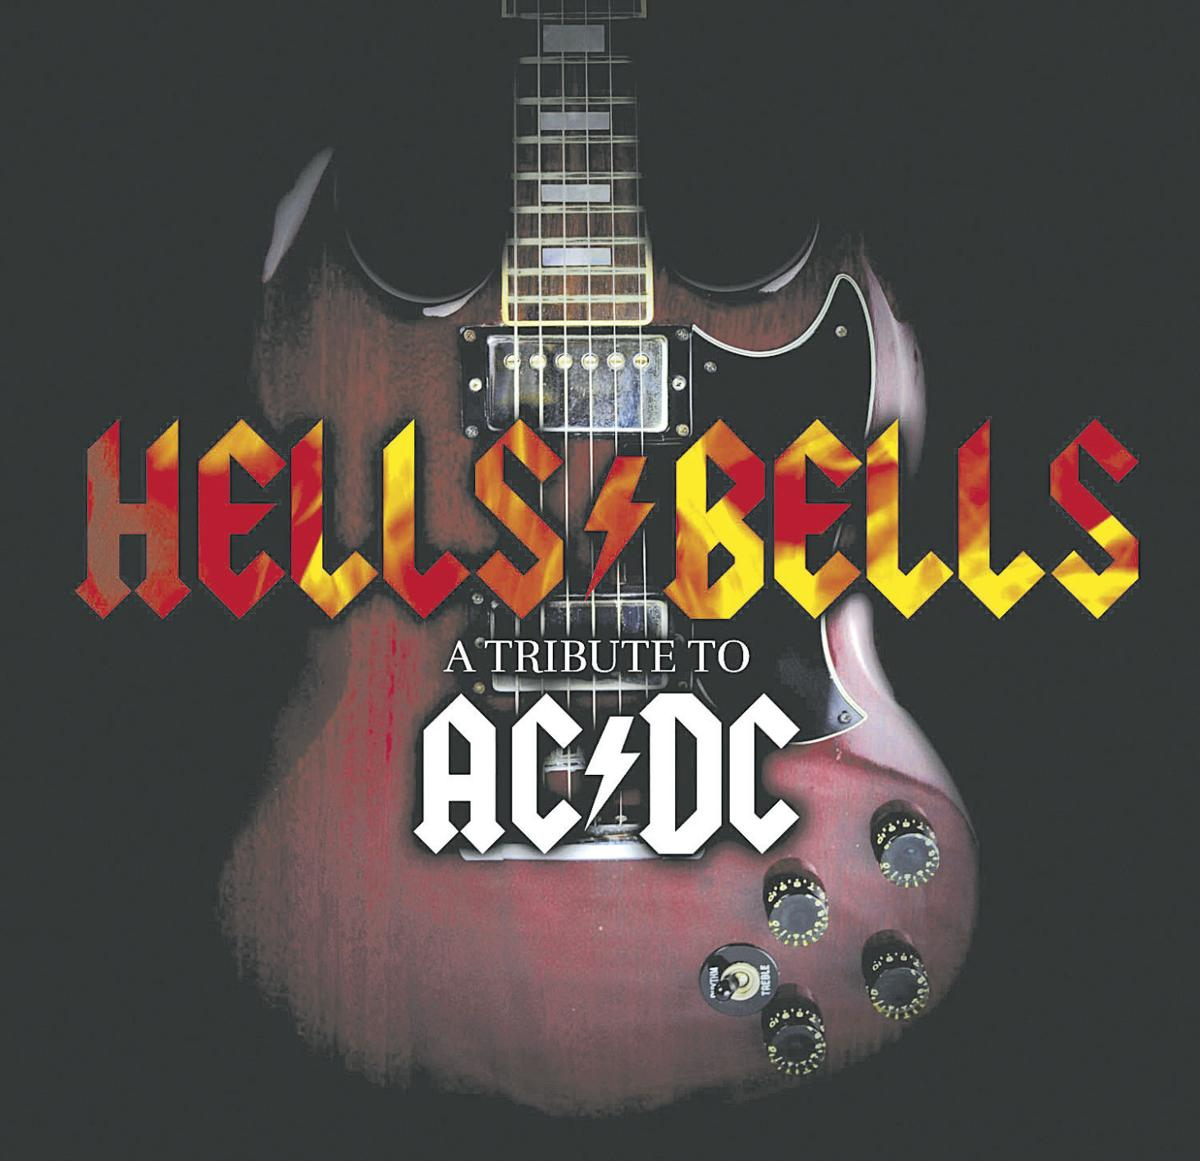 hells-bells-header-logo copy.jpg